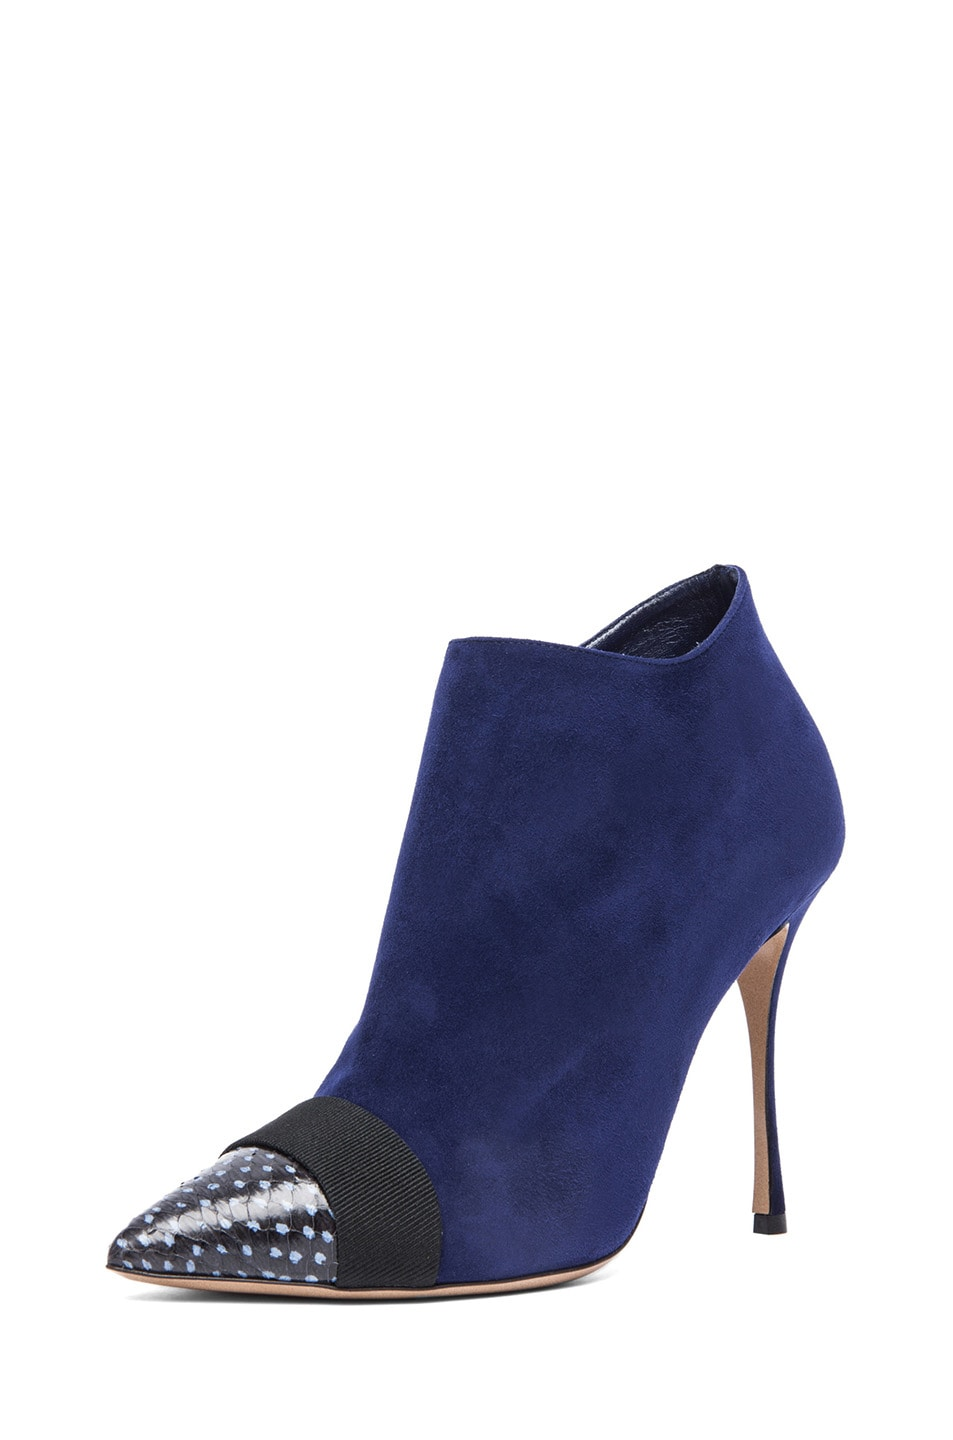 Image 2 of Nicholas Kirkwood Suede Ankle Boots in Black & Indigo